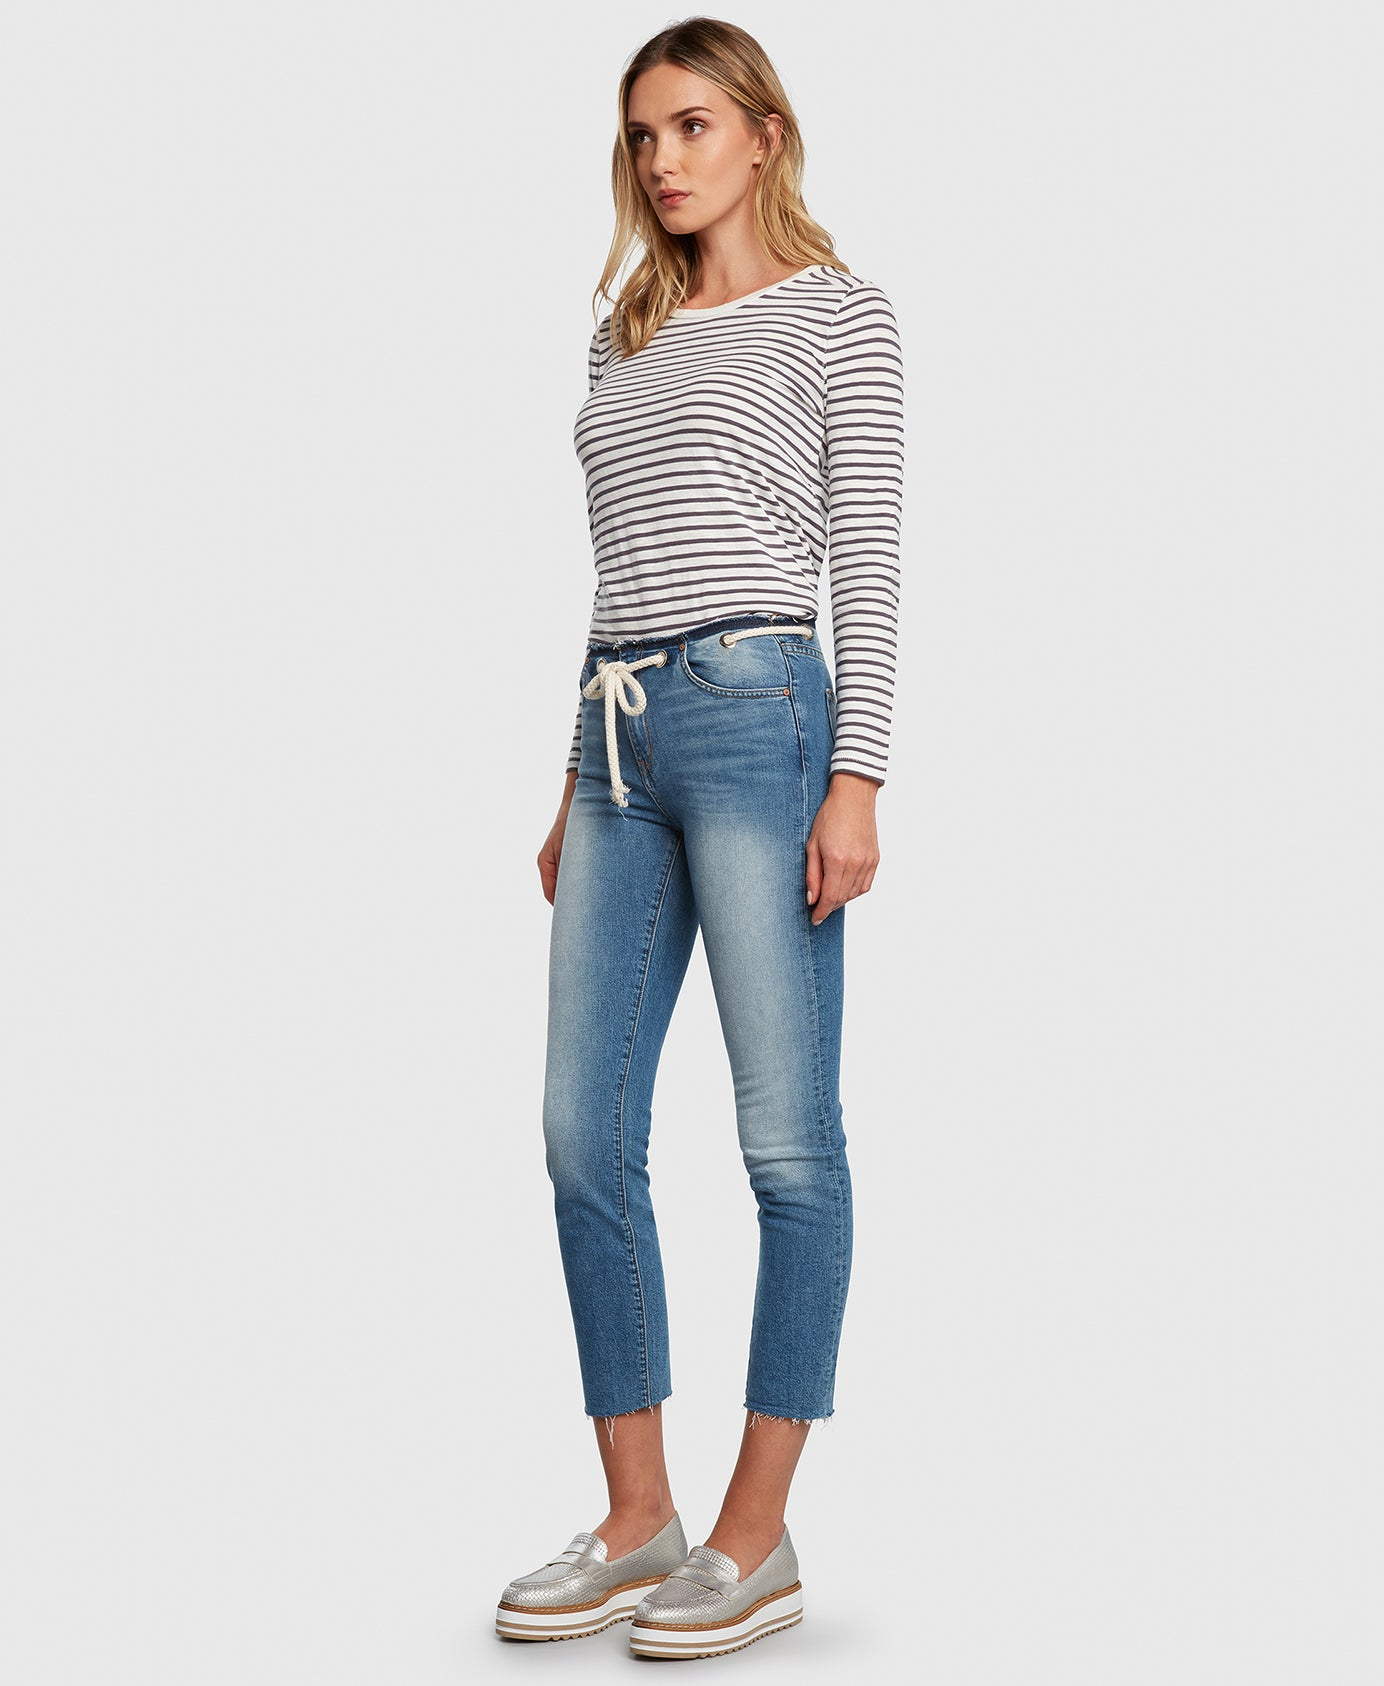 Principle CASTAWAY in Holiday cropped jeans side